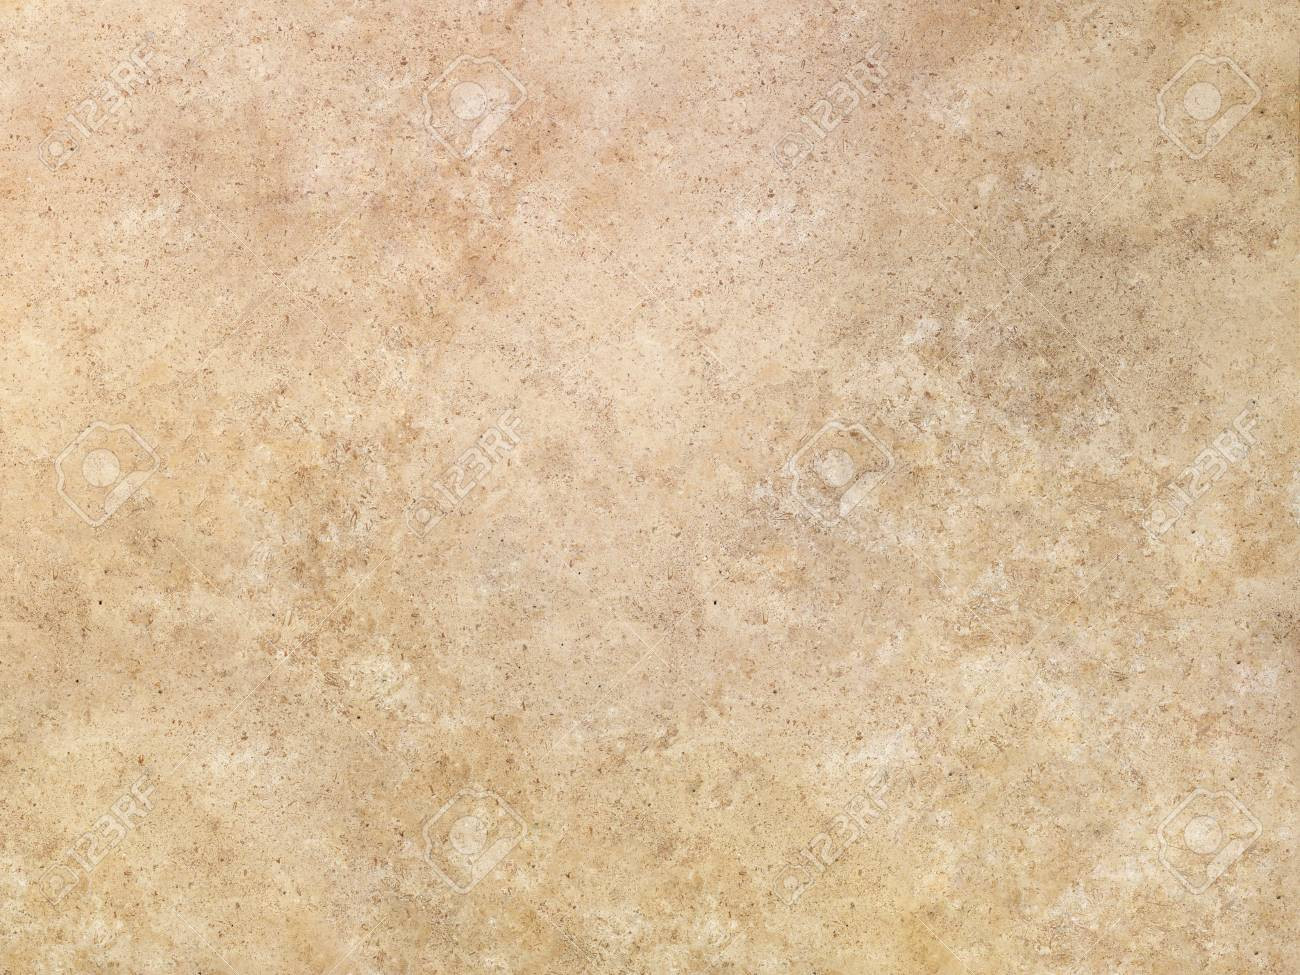 Beige Tan Travertine Marble Surface Texture Stock Photo Picture And Royalty Free Image Image 90469630